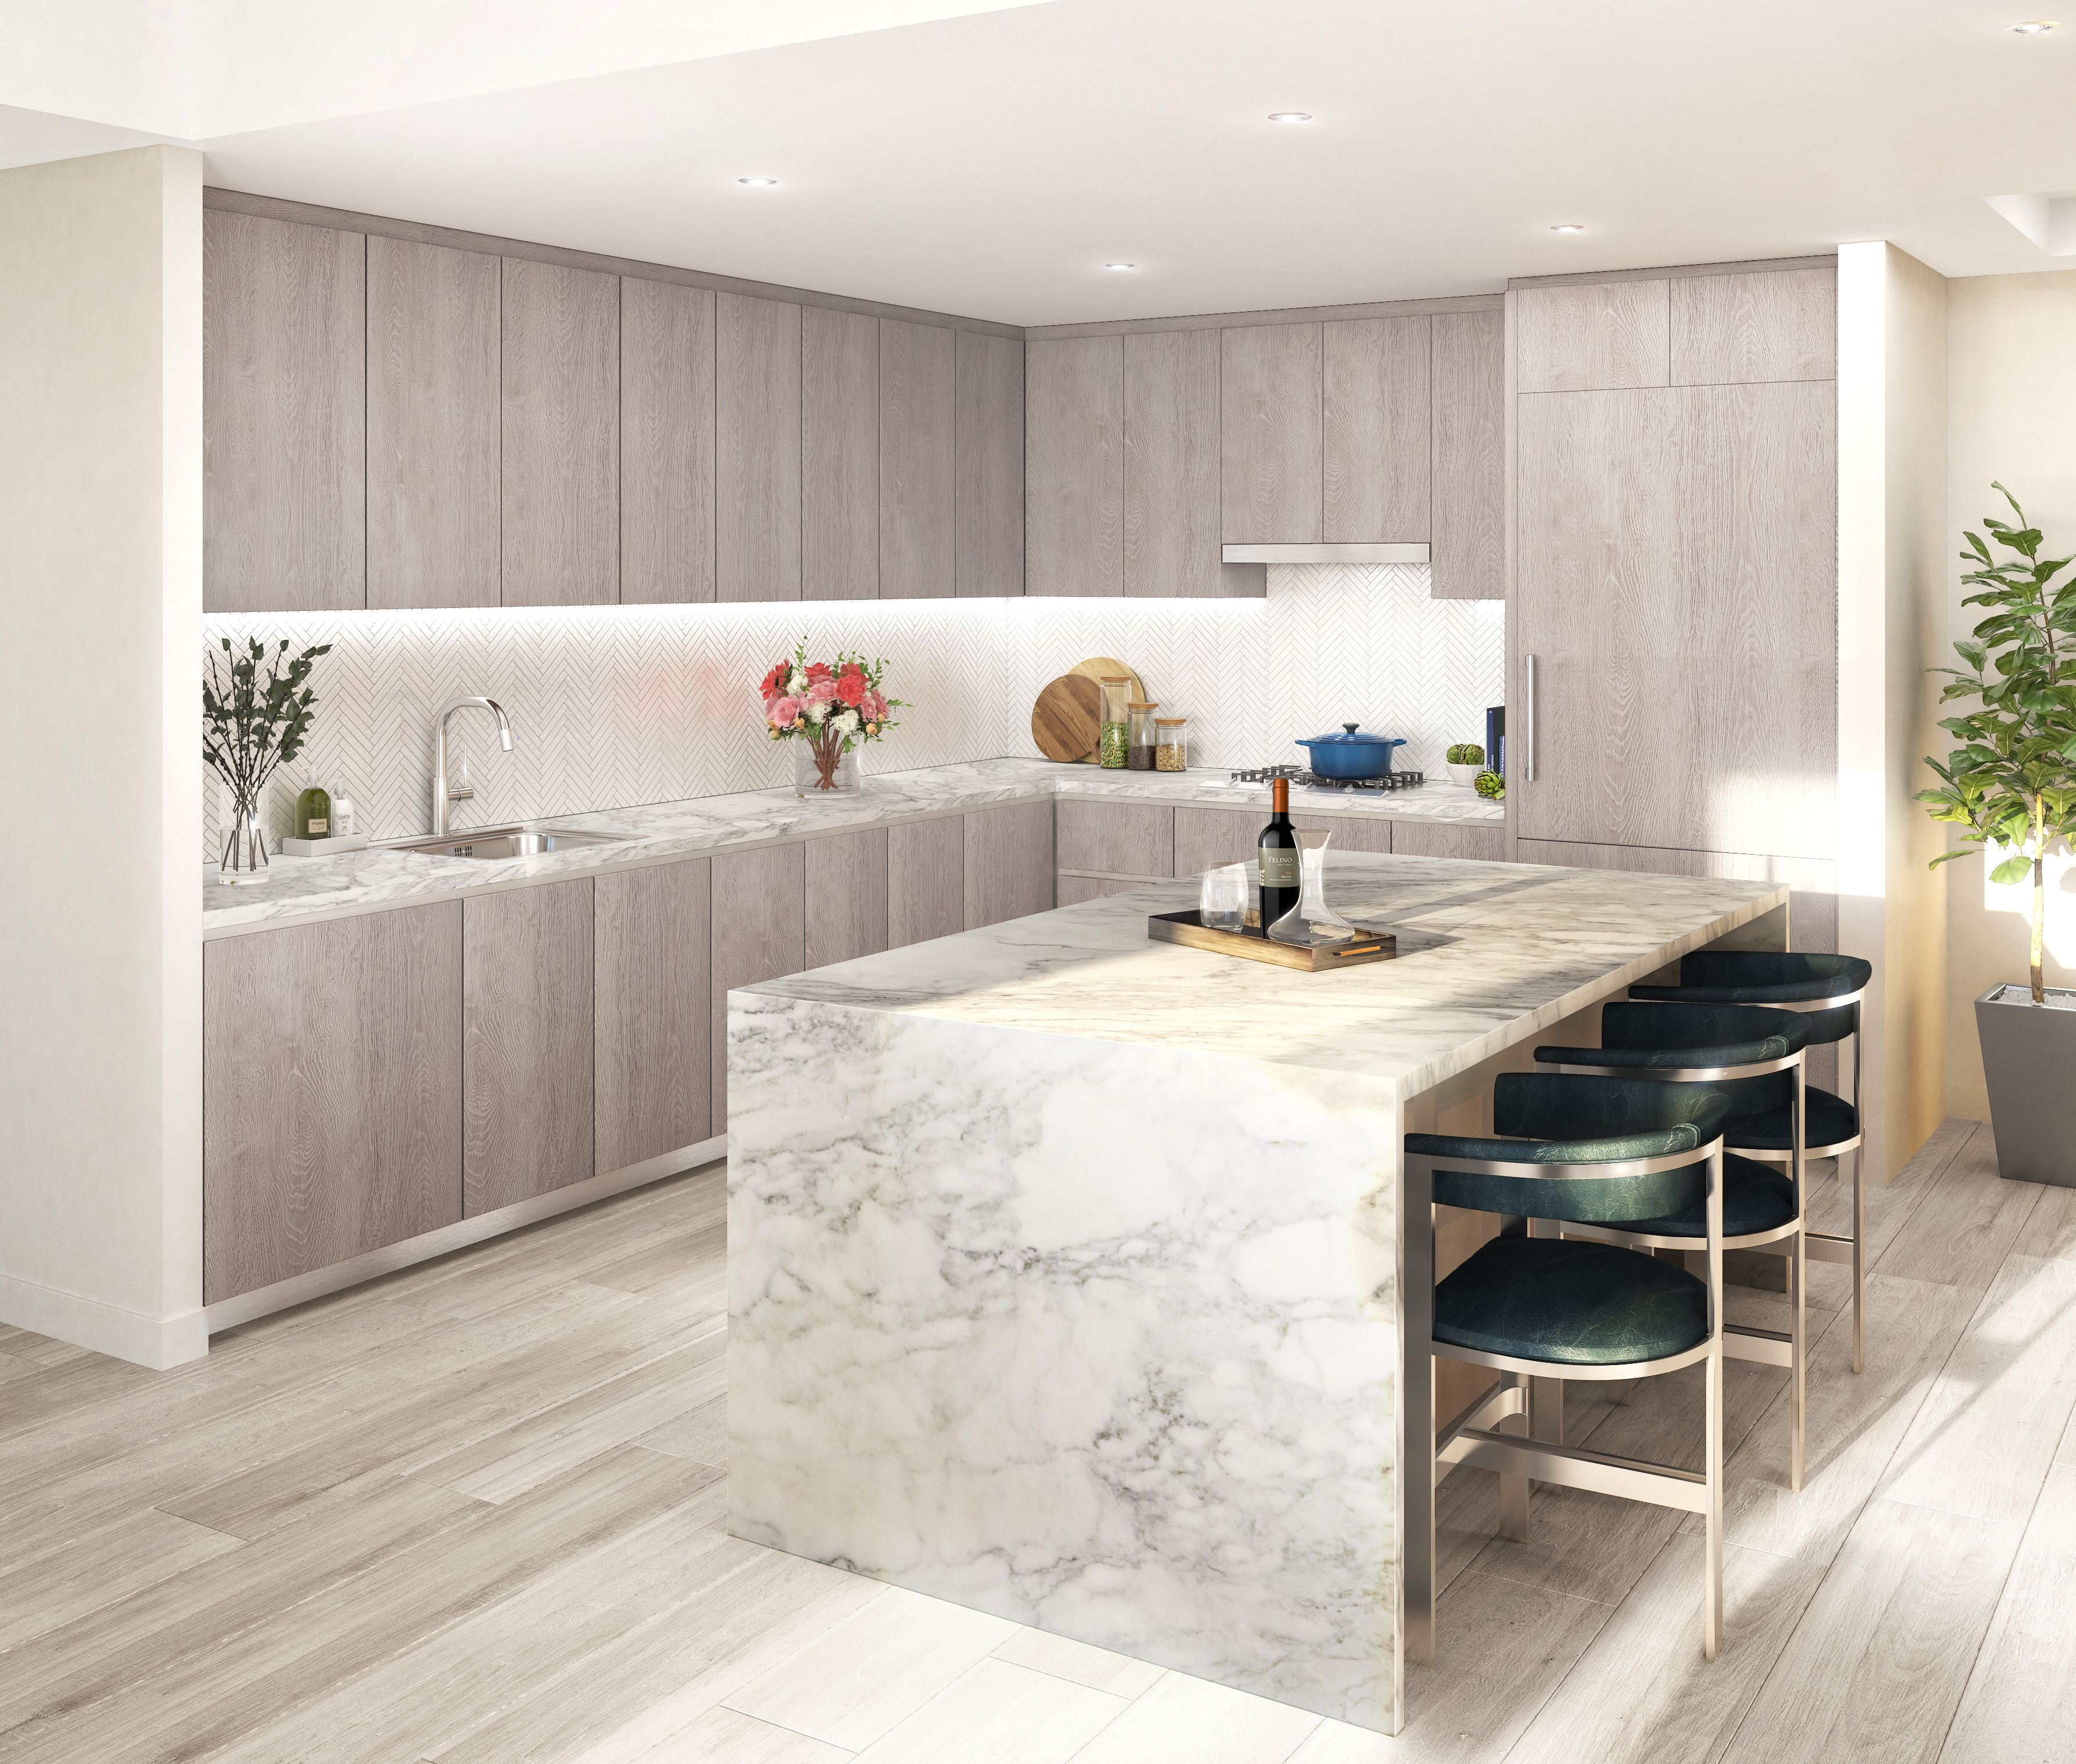 Kitchen featured in the Residence D4 By MUSE in Washington, VA